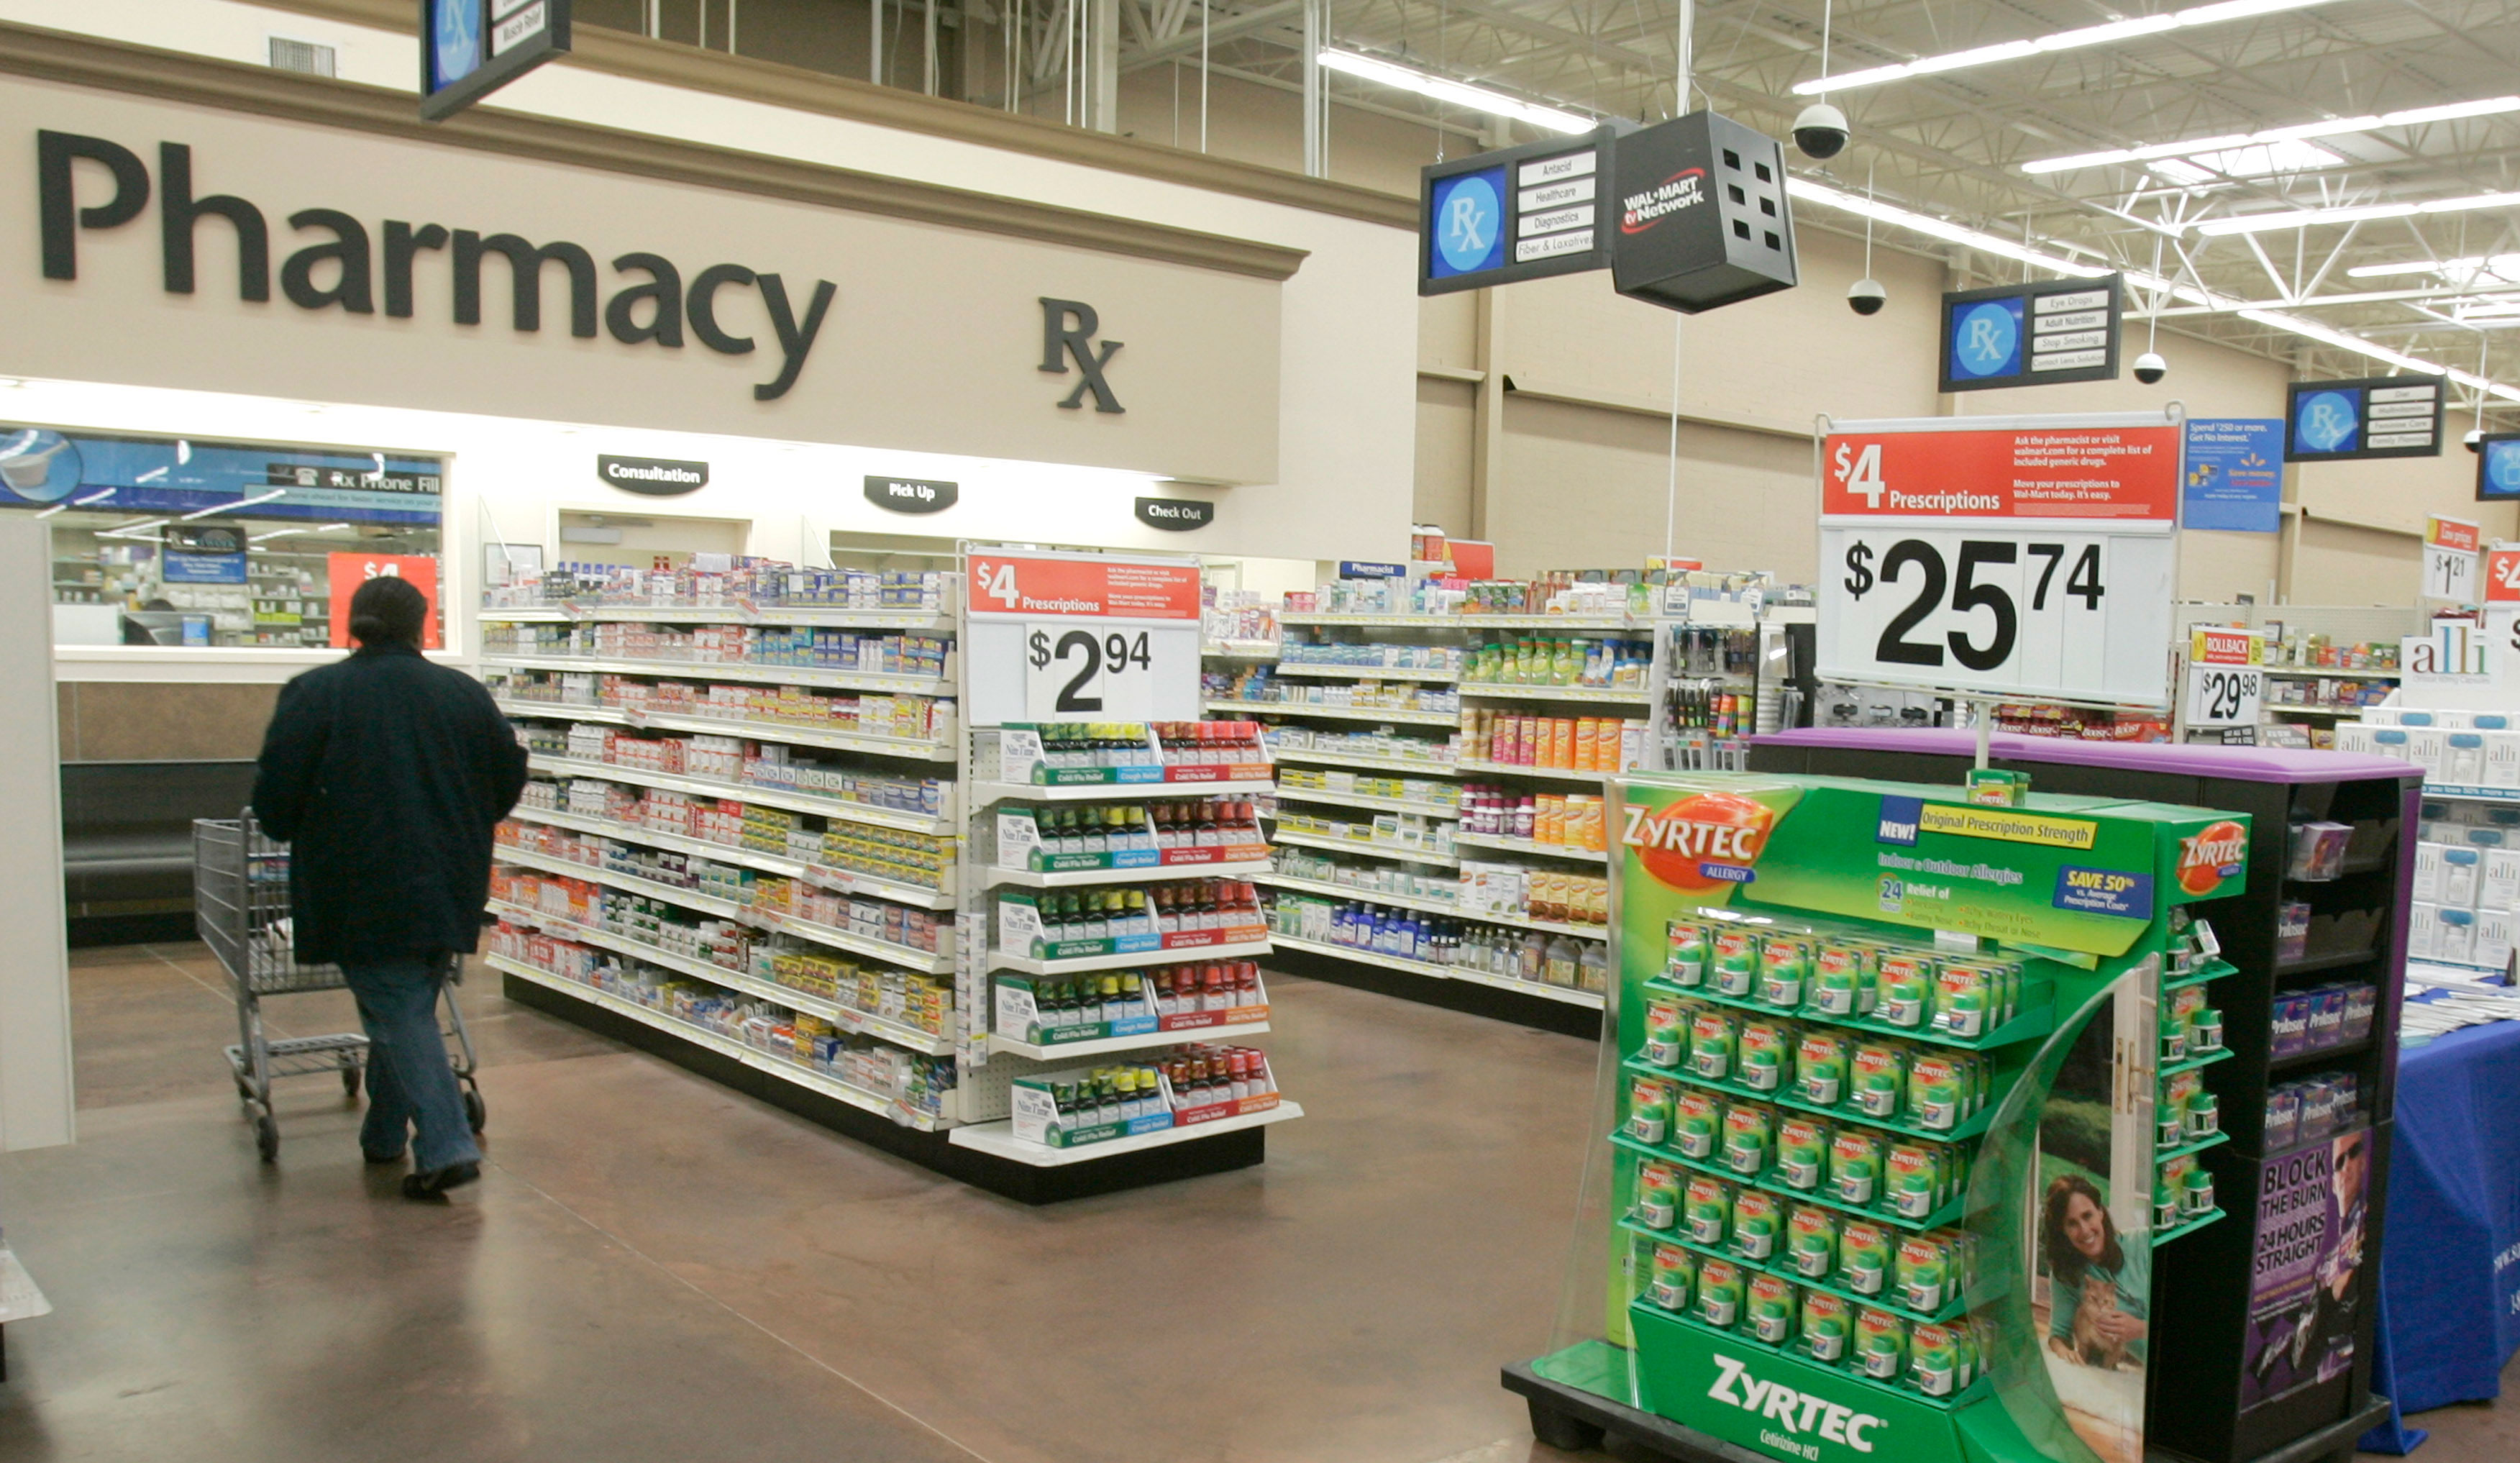 A shopper walks toward the pharmacy at a Little Rock, AK Wal-Mart store.